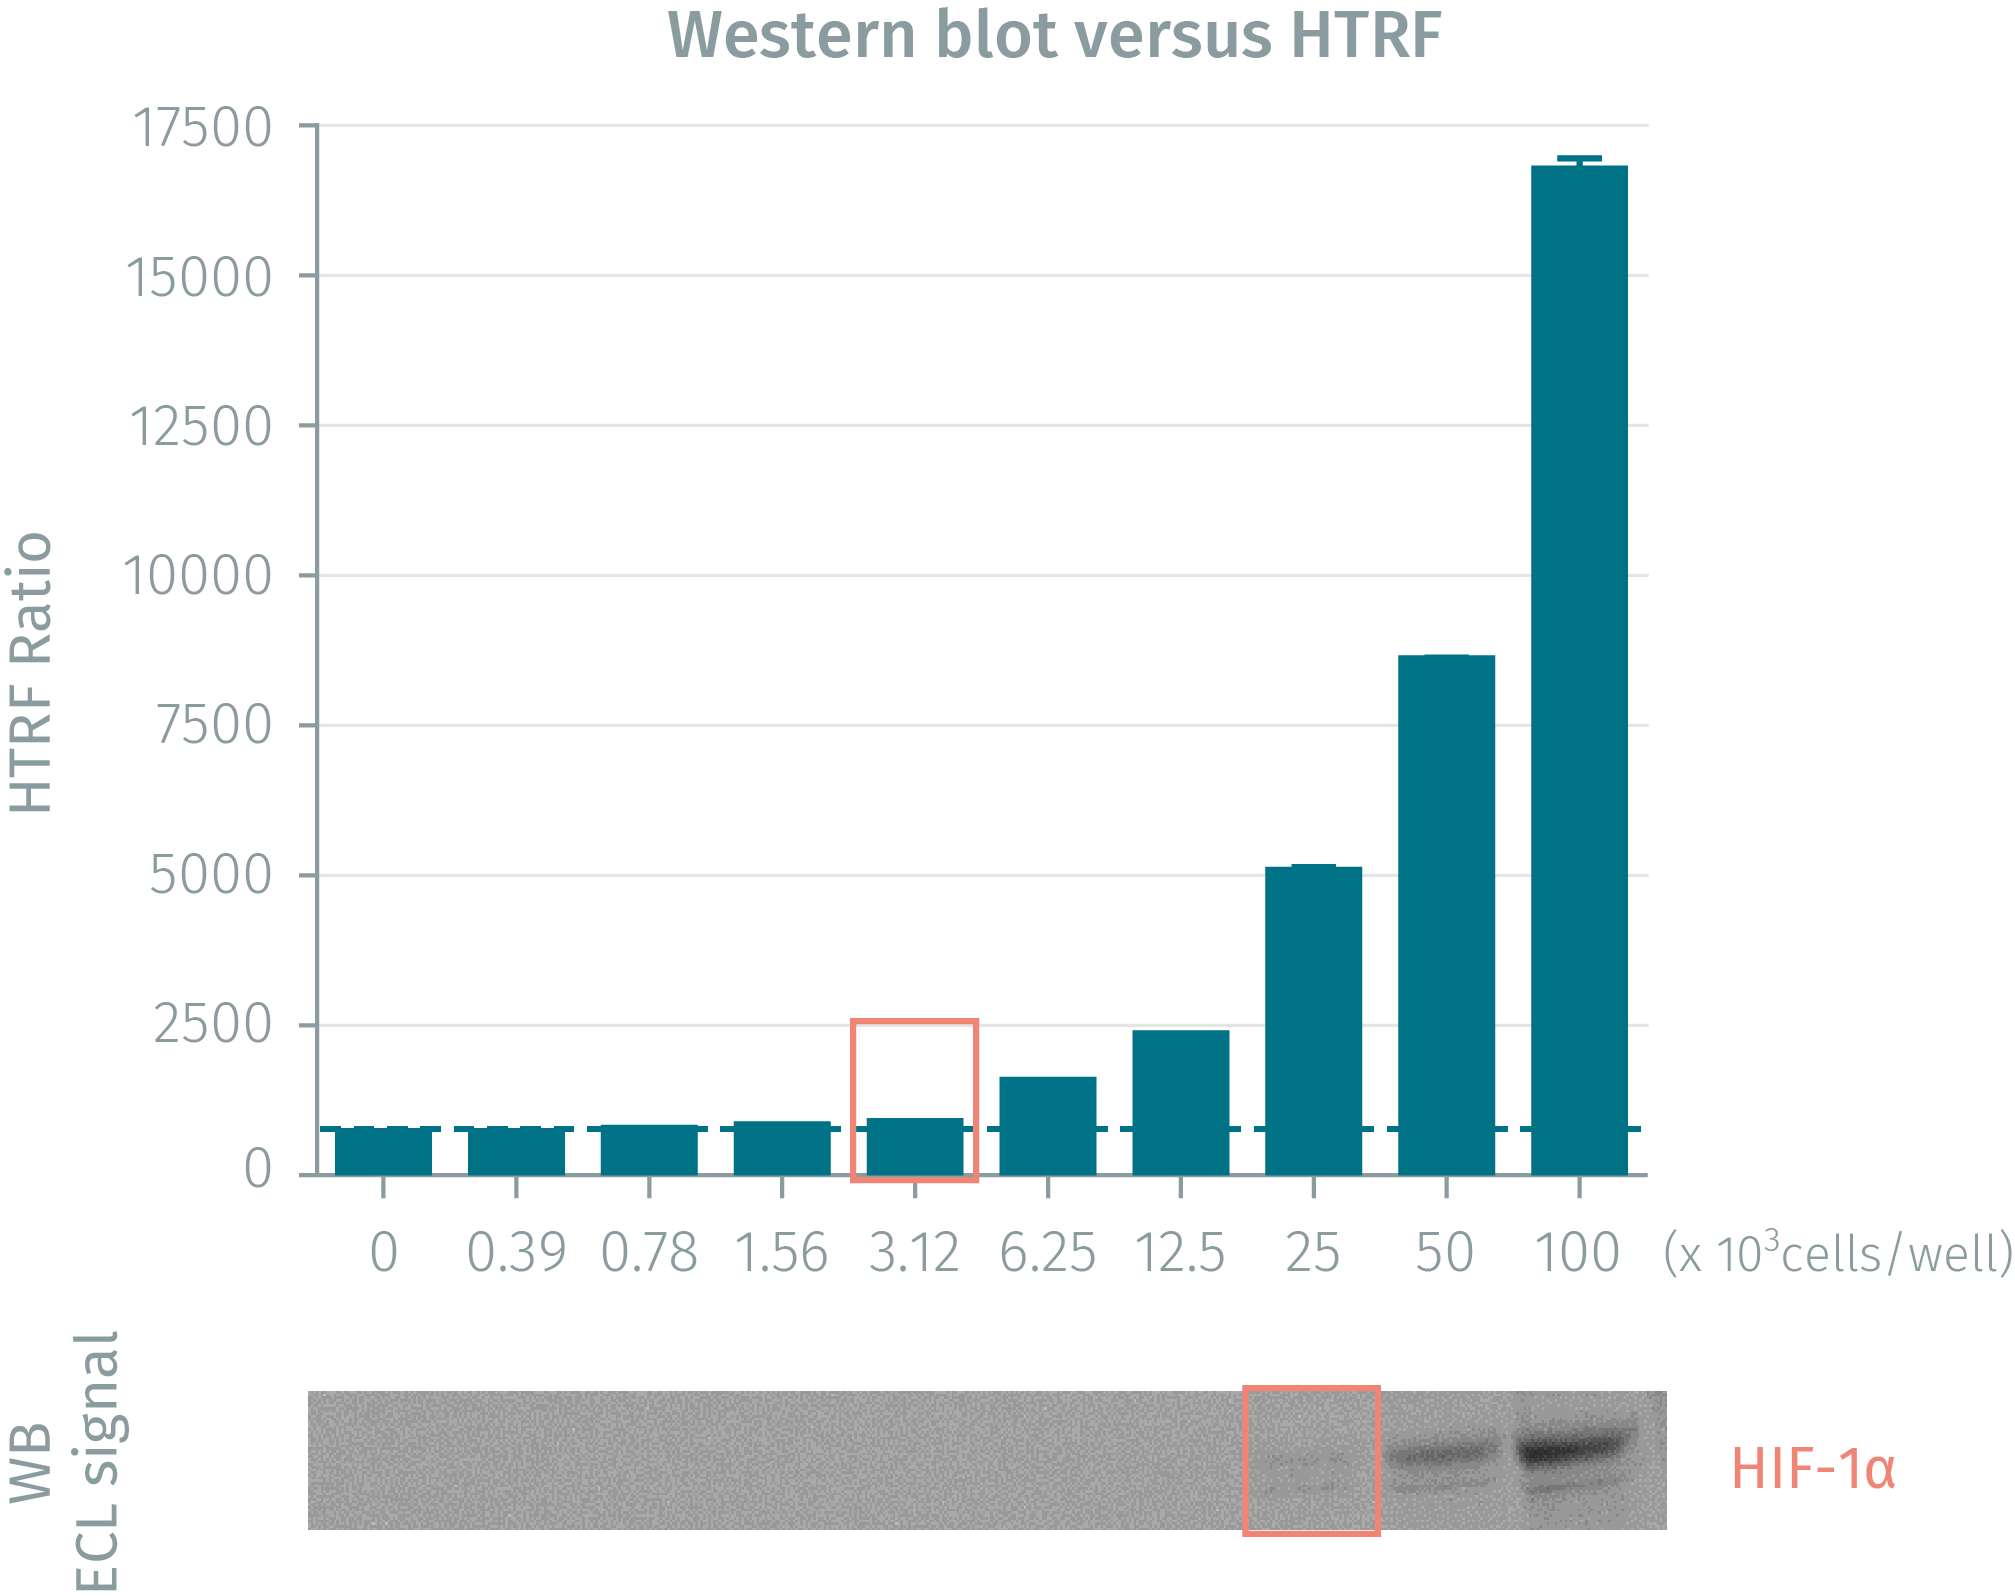 HIF1-a protein level comparison HTRF vs Western Blot